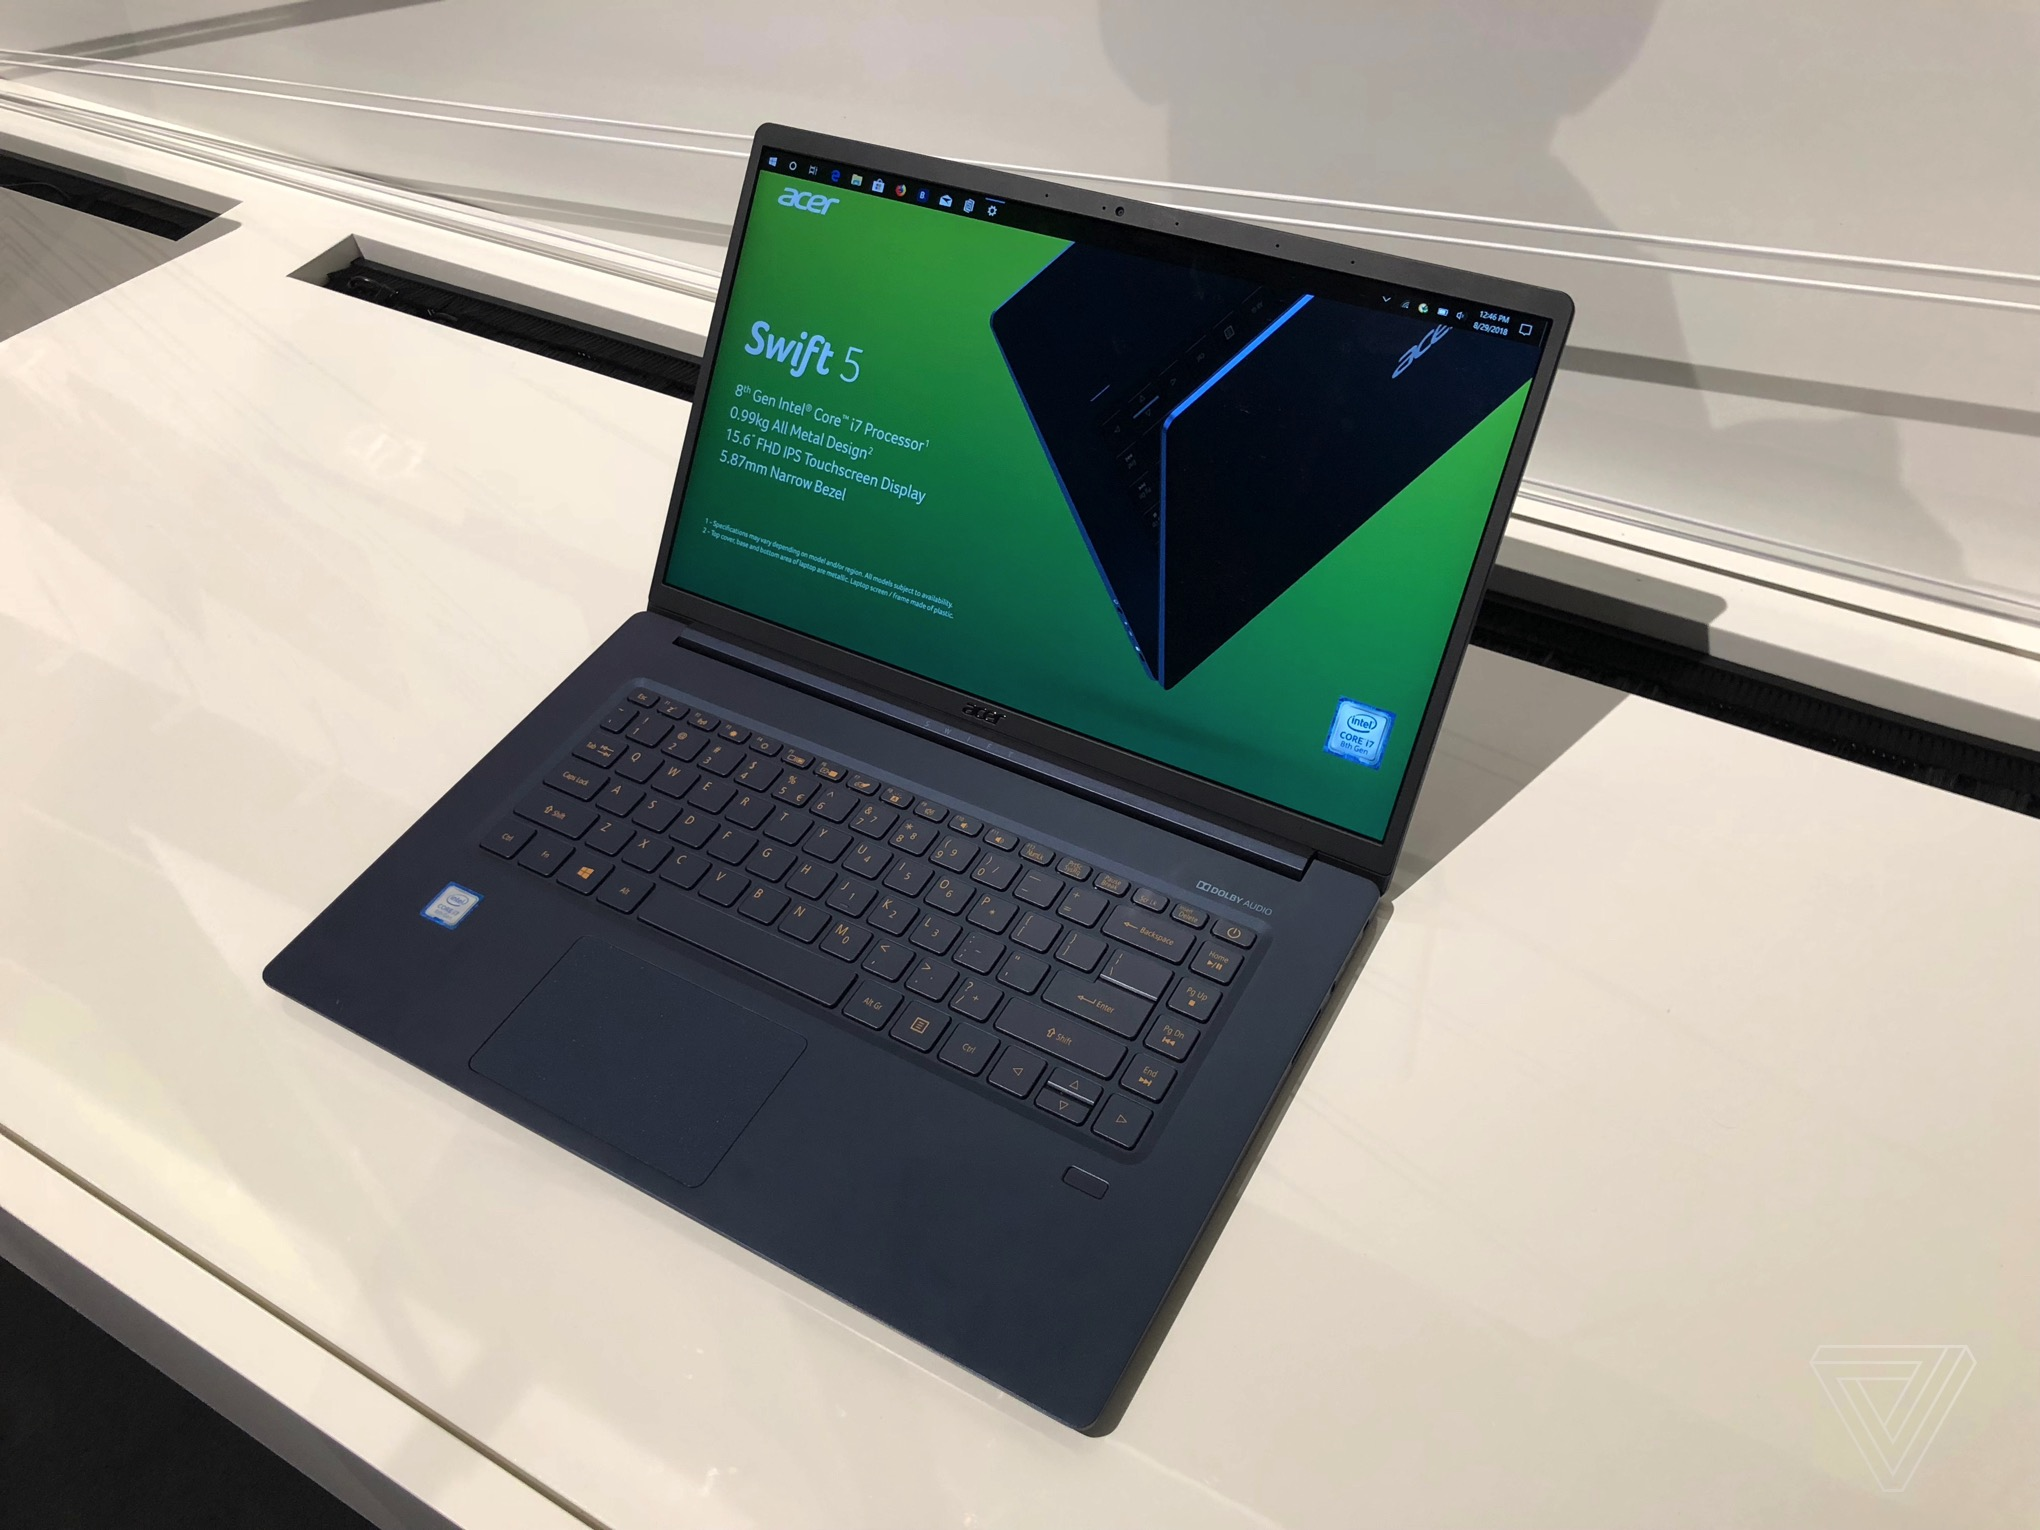 Acer's lightweight Swift 5 will cost $1,099 when it's released in